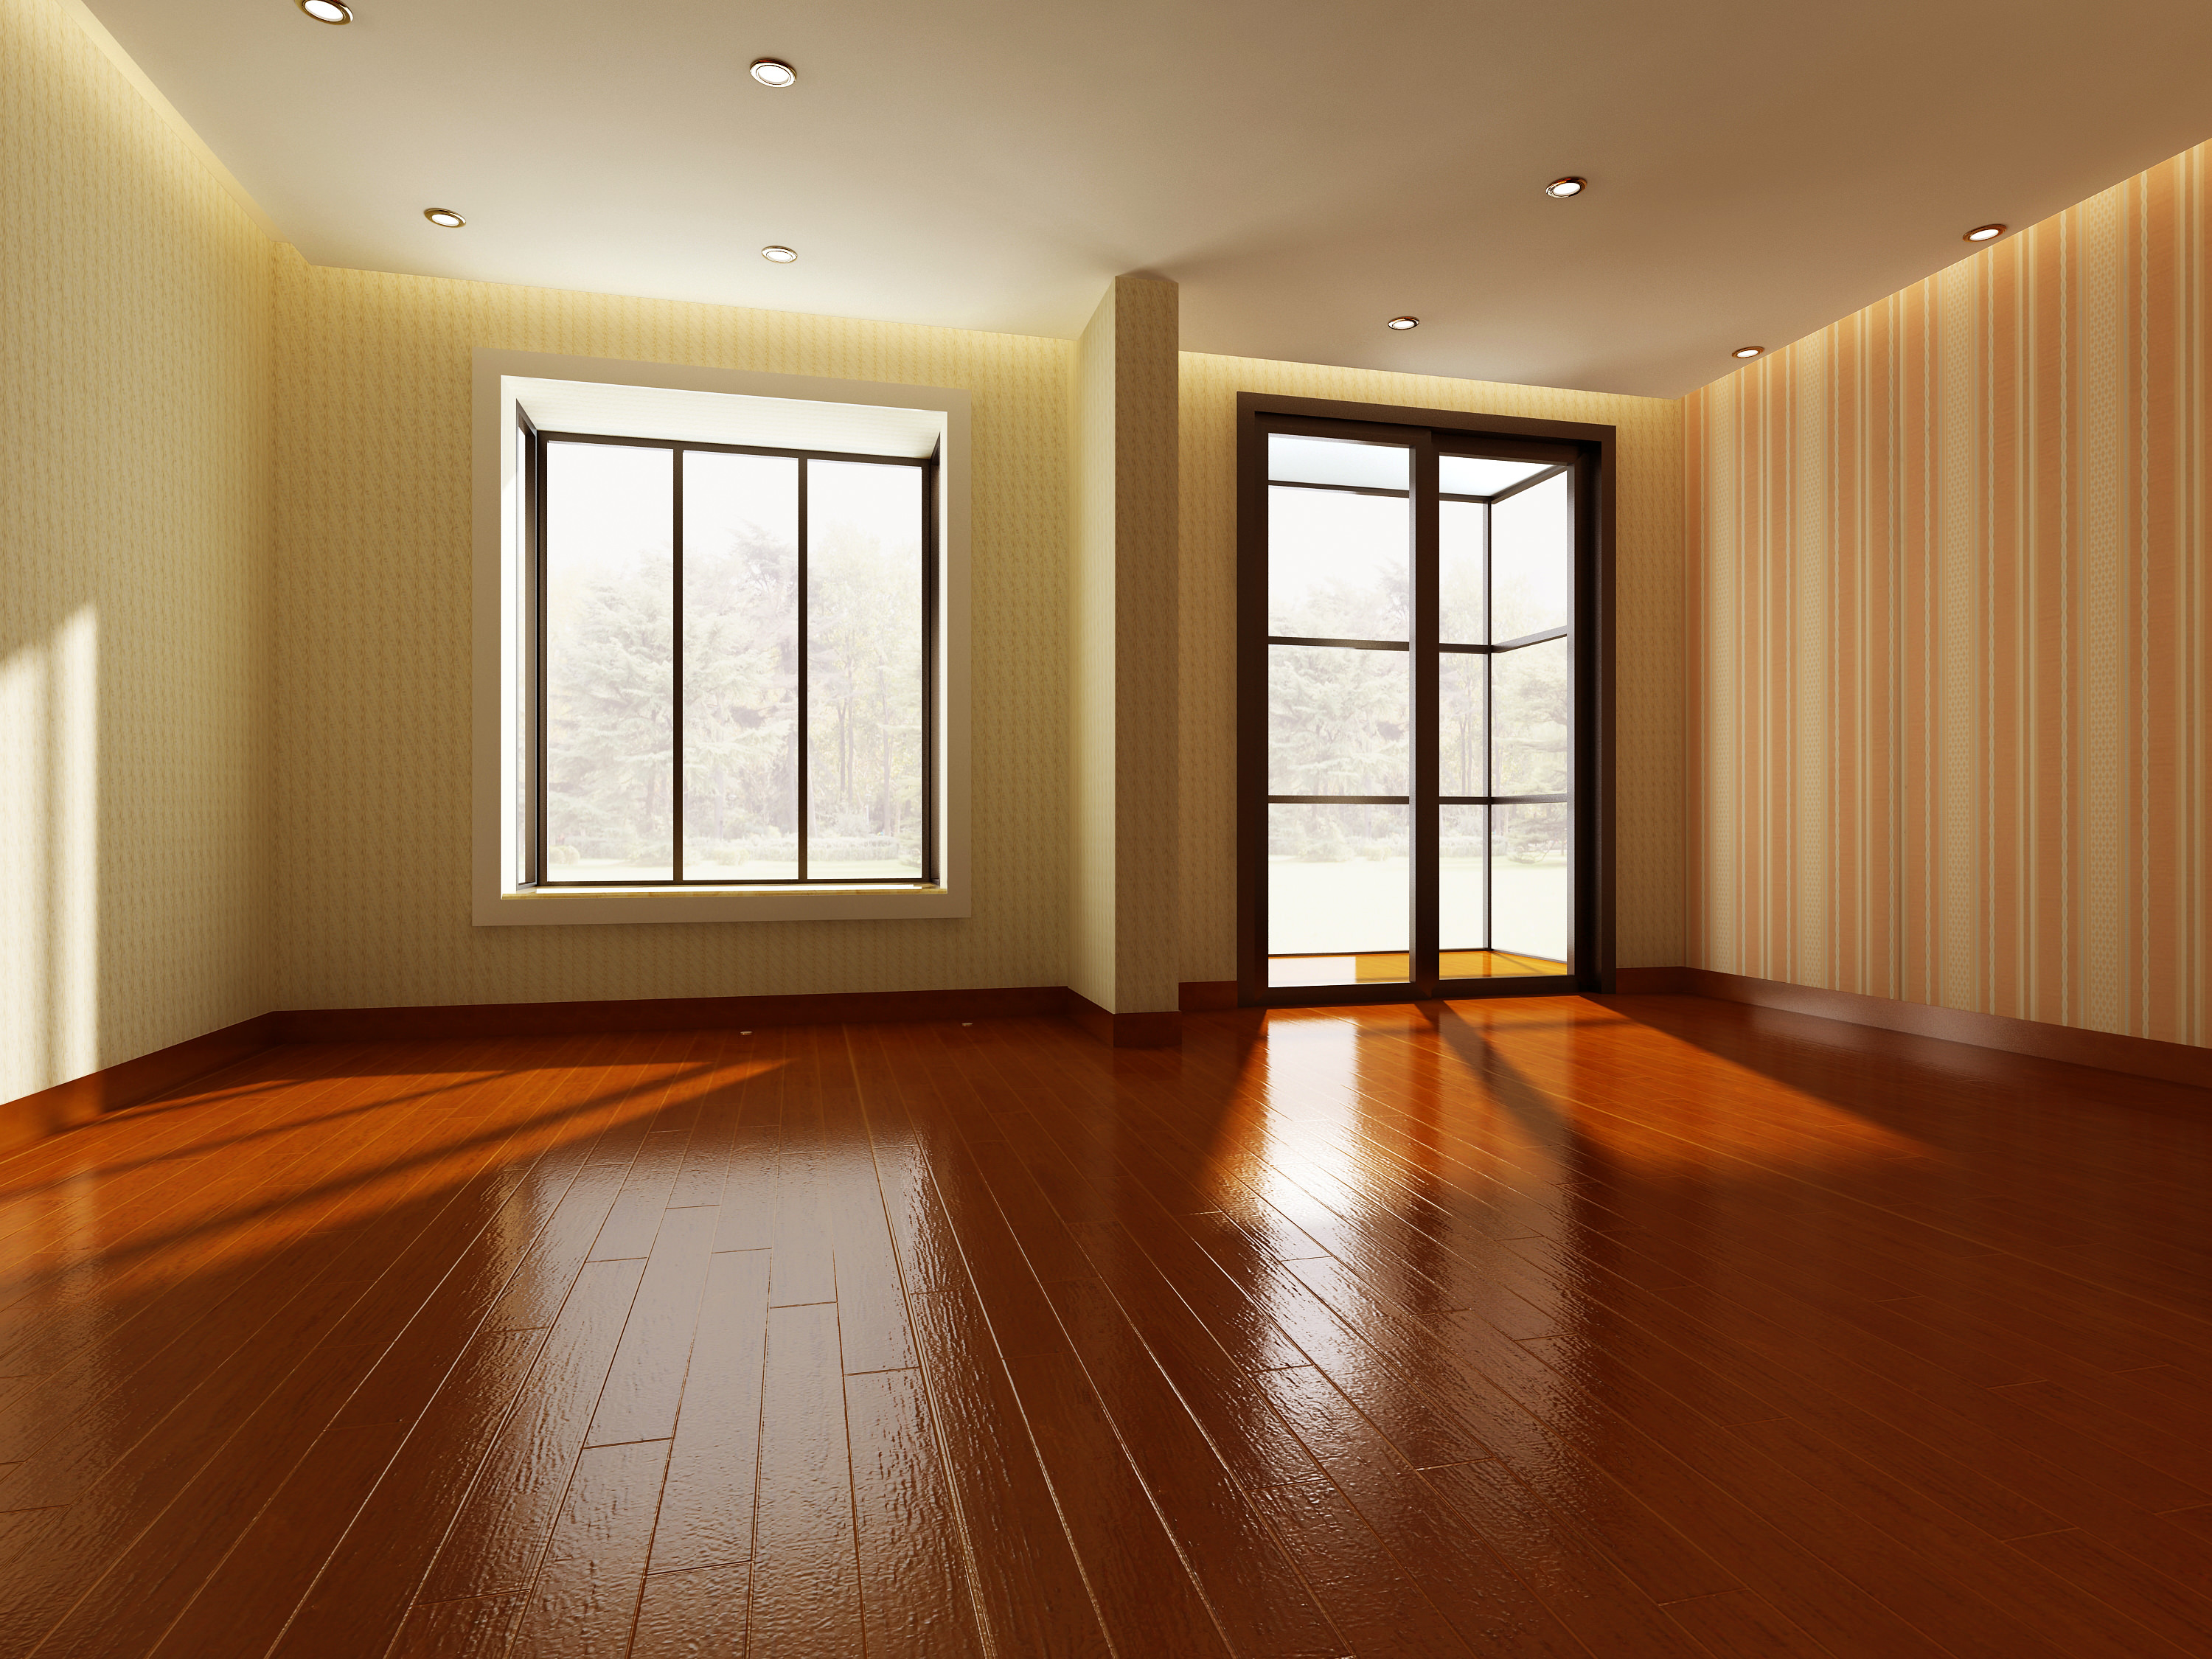 Empty room 3d model max for Living room 4 pics 1 word